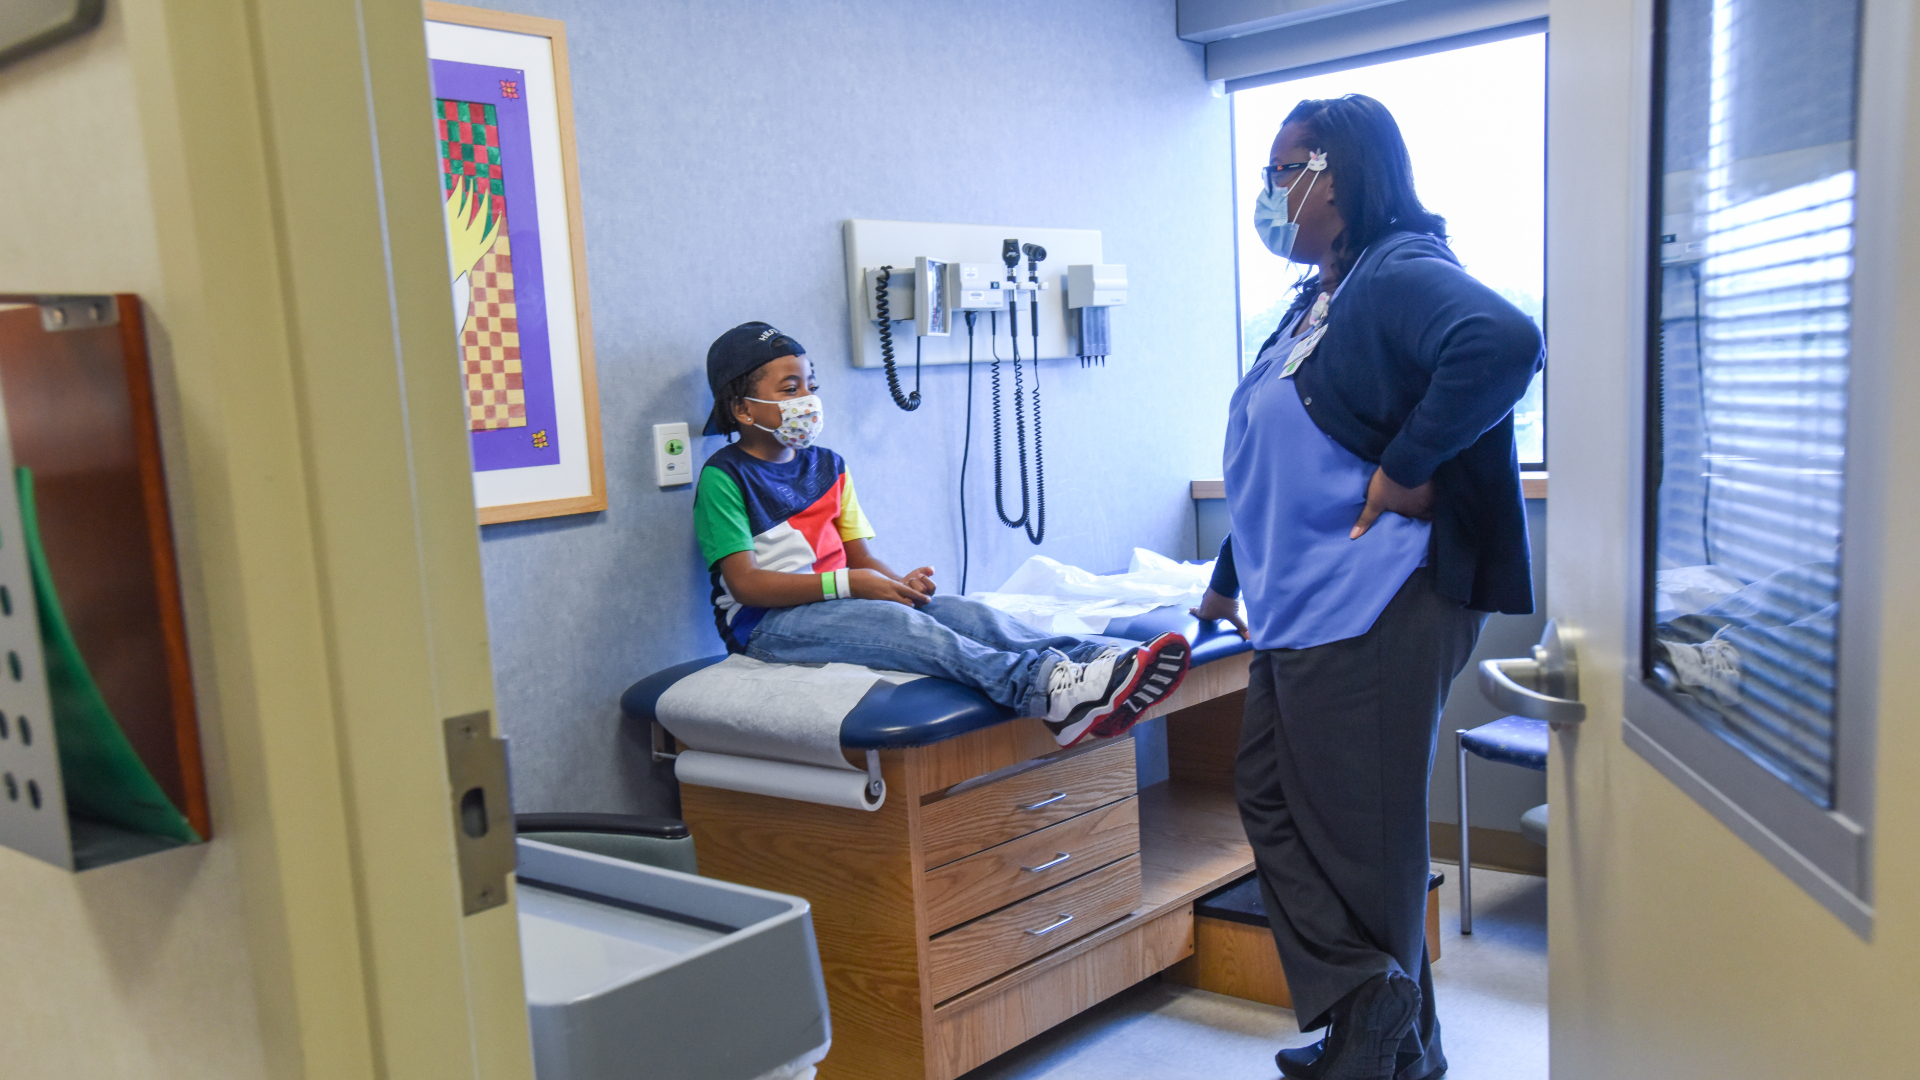 Dr. Kristina Harrell directs the sickle cell program at Levine Children's, leading the way as we take on some of the disease's biggest challenges. From improving access to sickle cell care to studying futuristic cures, here are three ways we're working to help kids with the disease live happier, healthier lives.